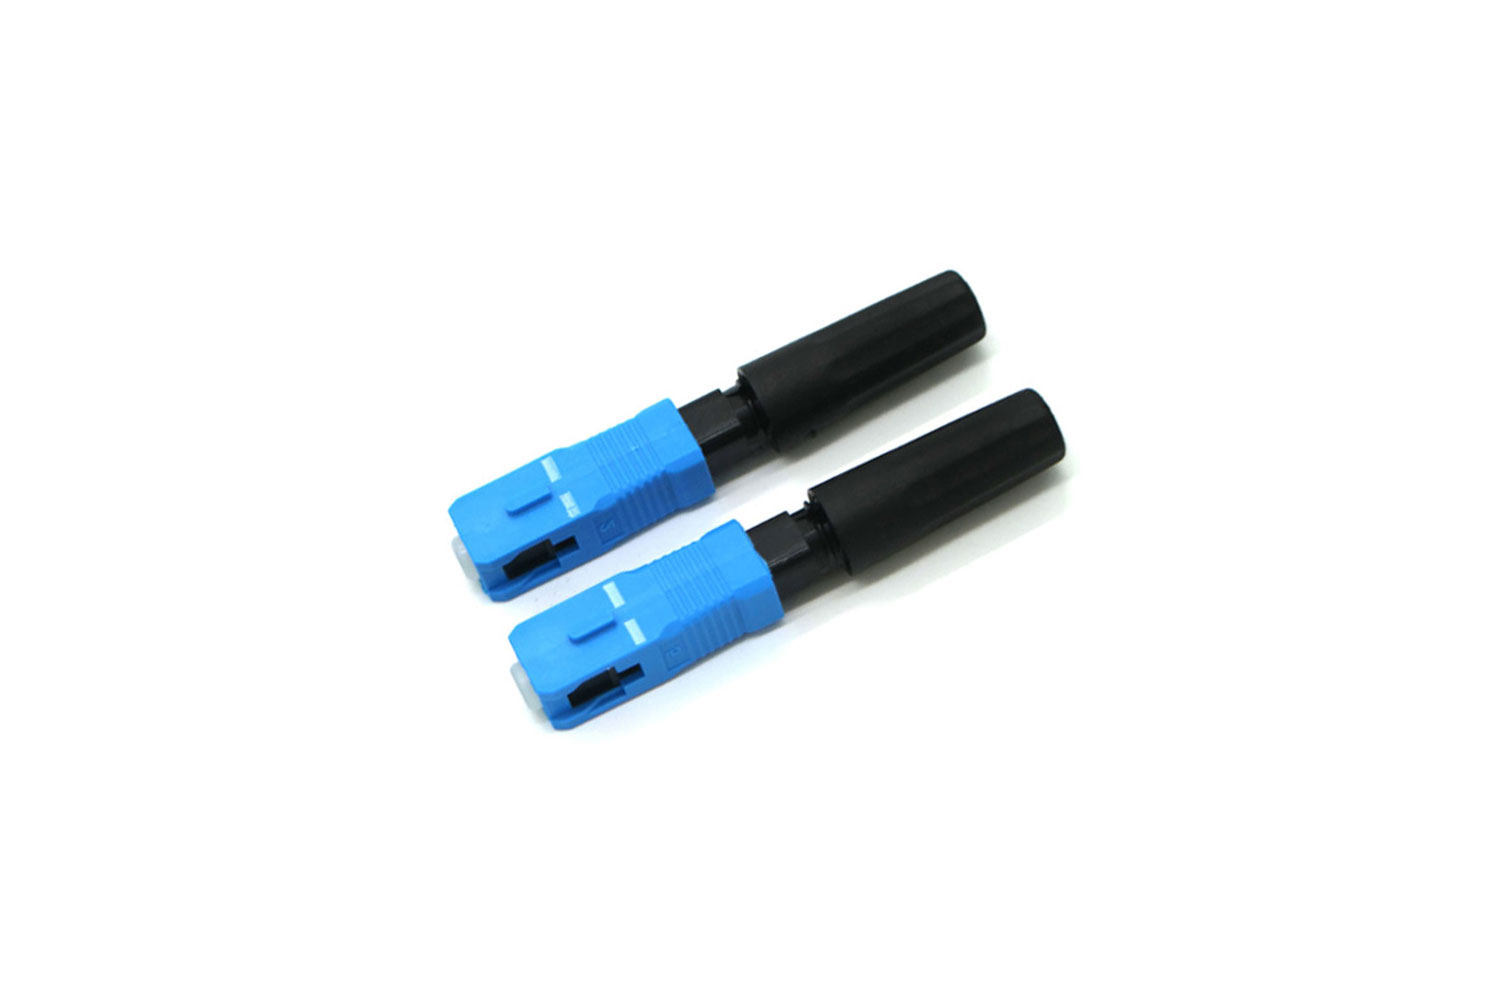 552 SC UPC Fast Connector (1)